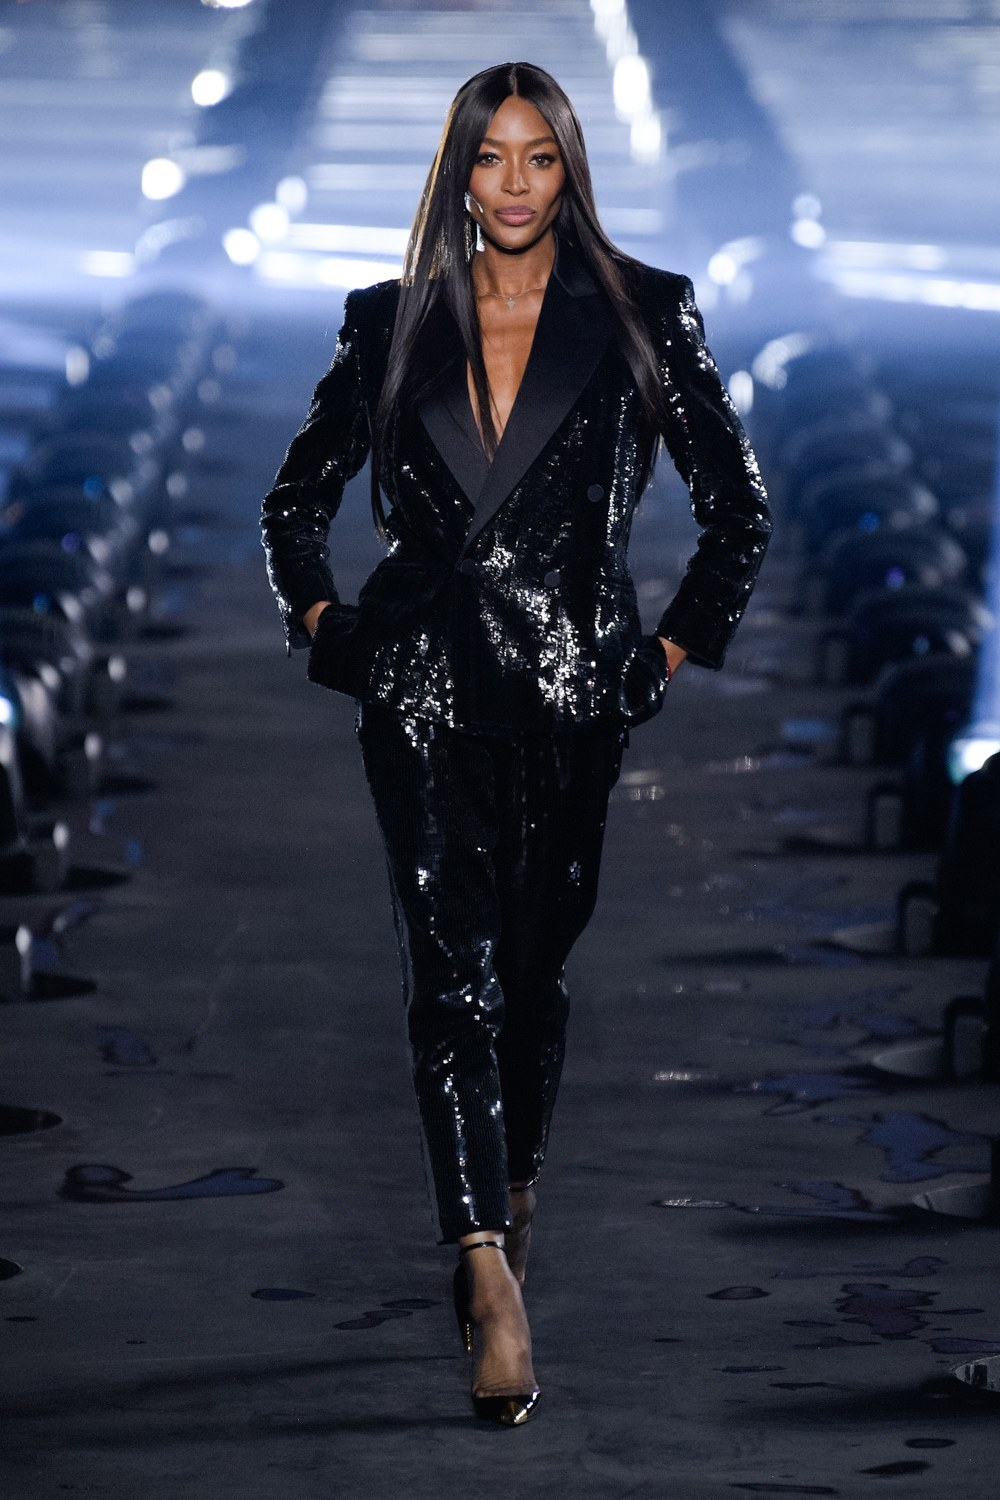 Naomi Campbell for Saint Laurent SS 2020 Ready-to-Wear.